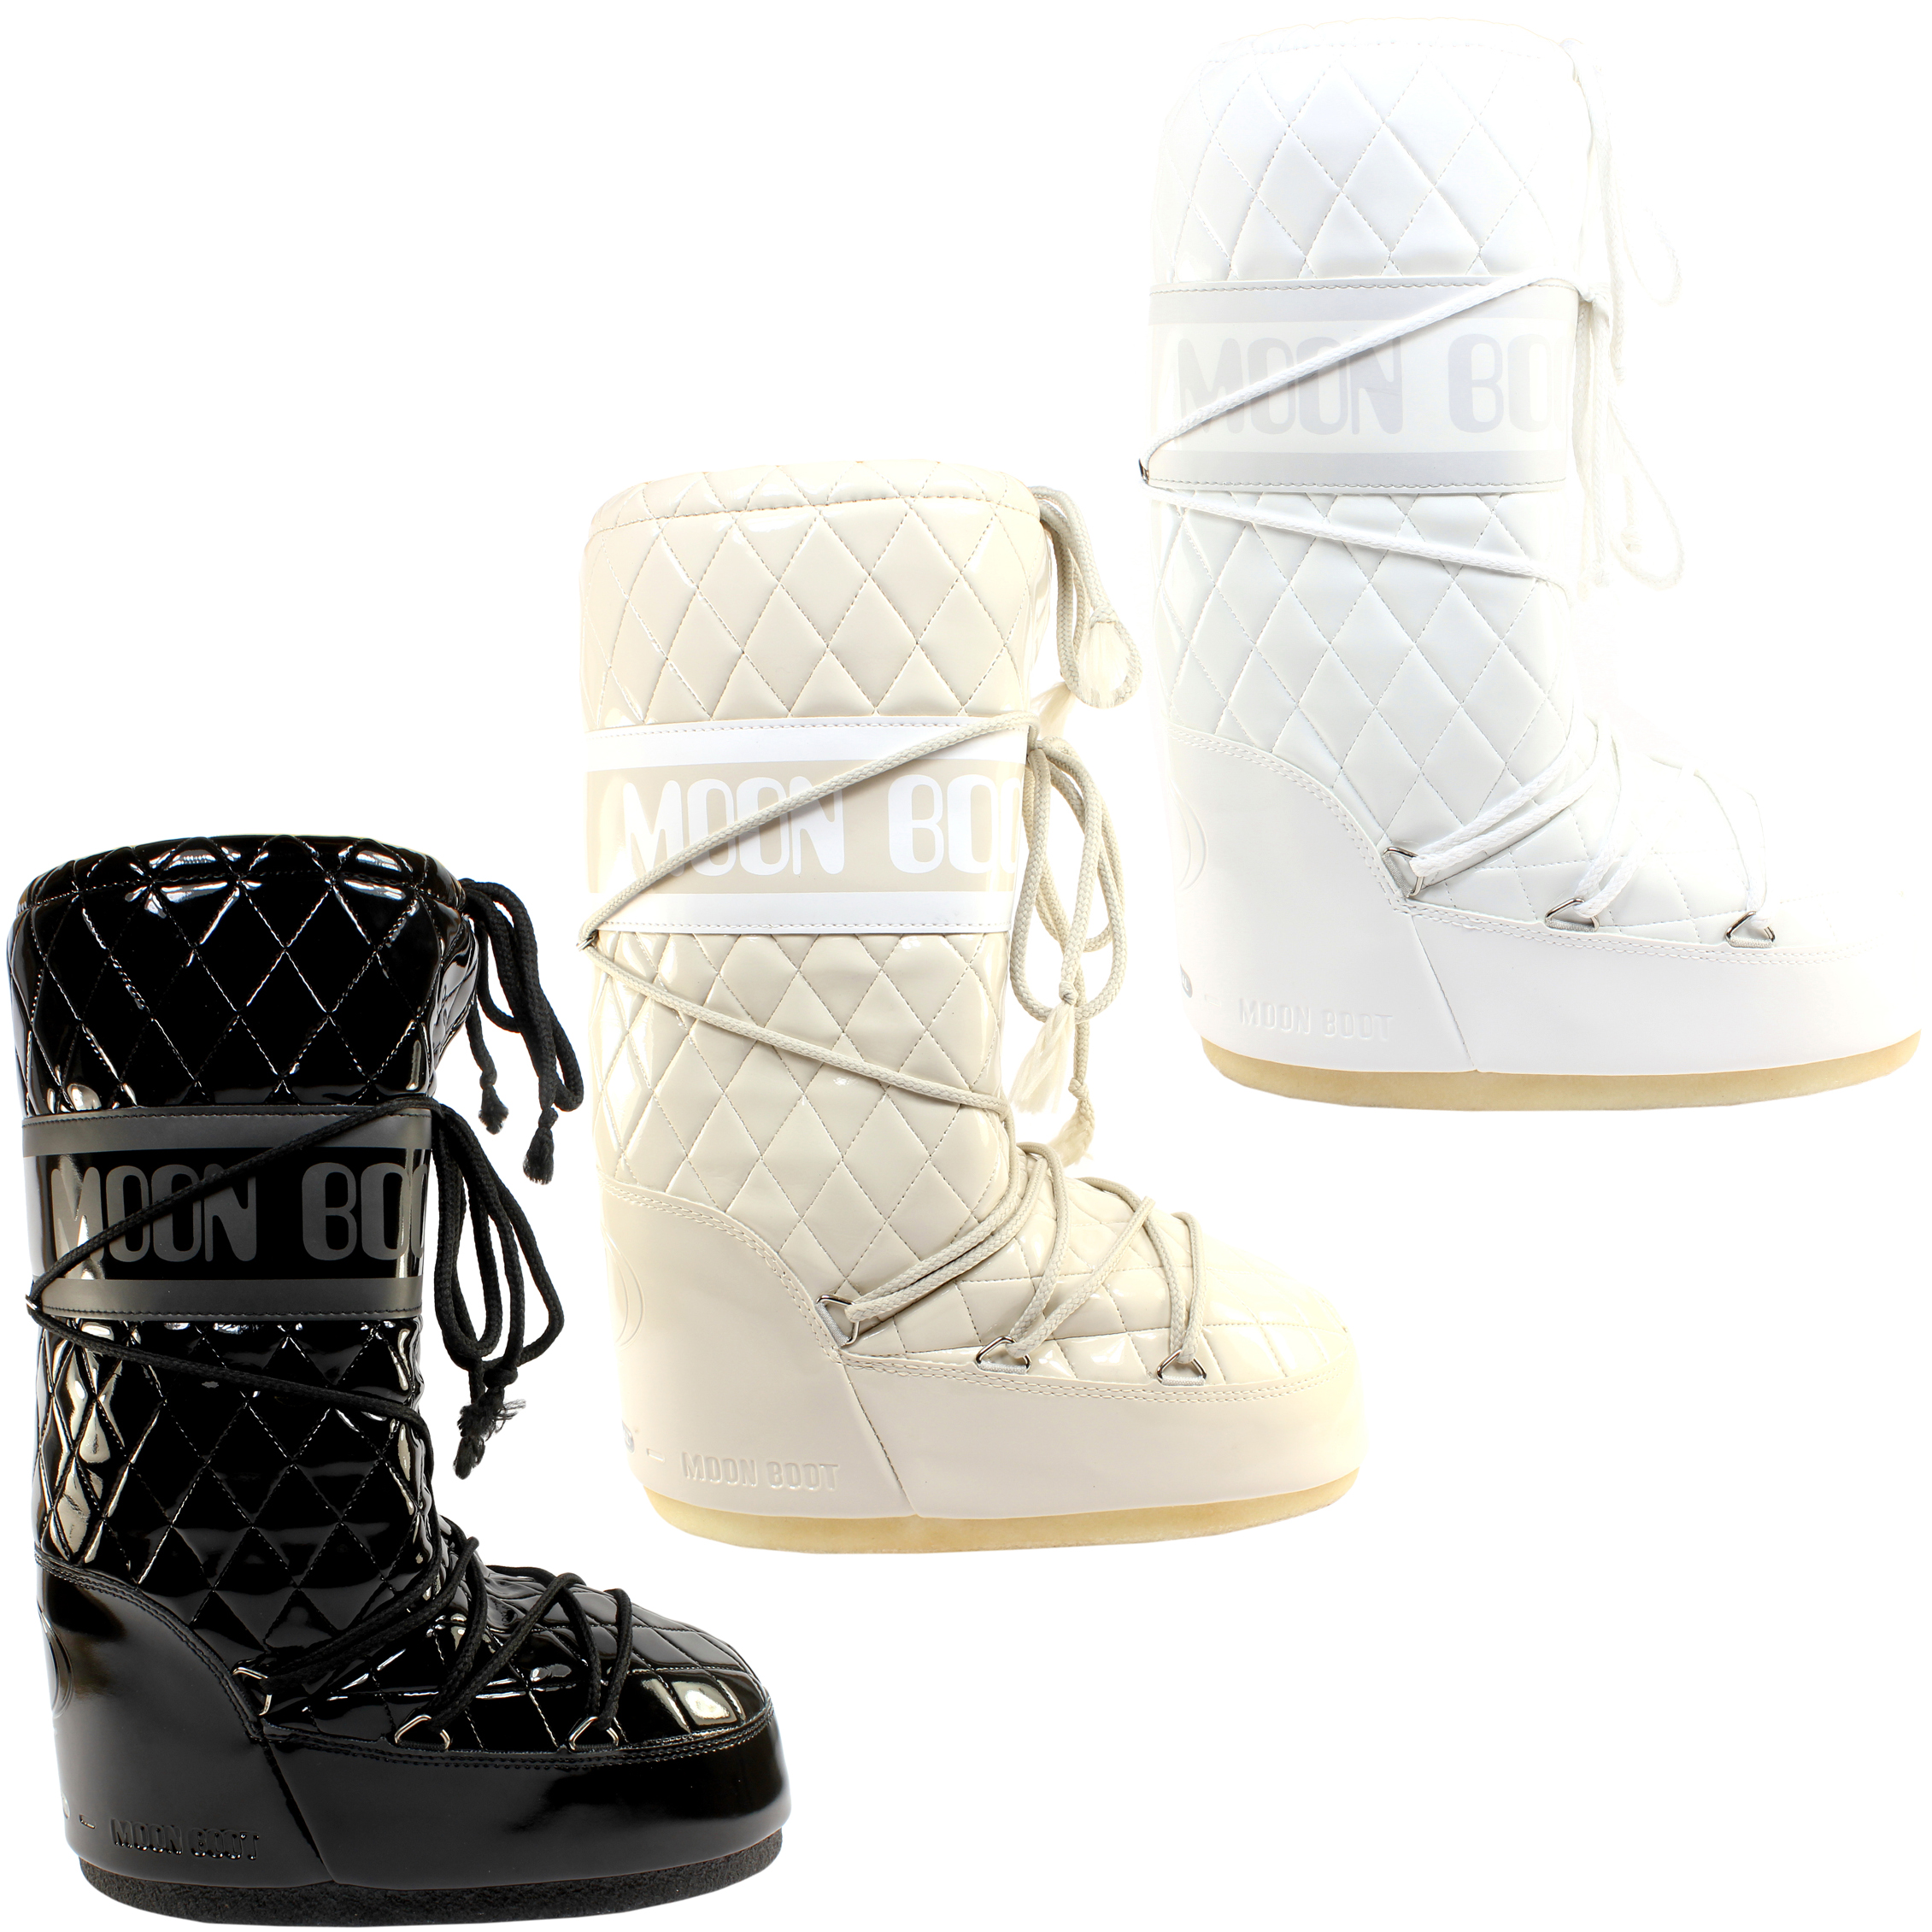 womens tecnica moon boot queen winter snow ski sking boots. Black Bedroom Furniture Sets. Home Design Ideas